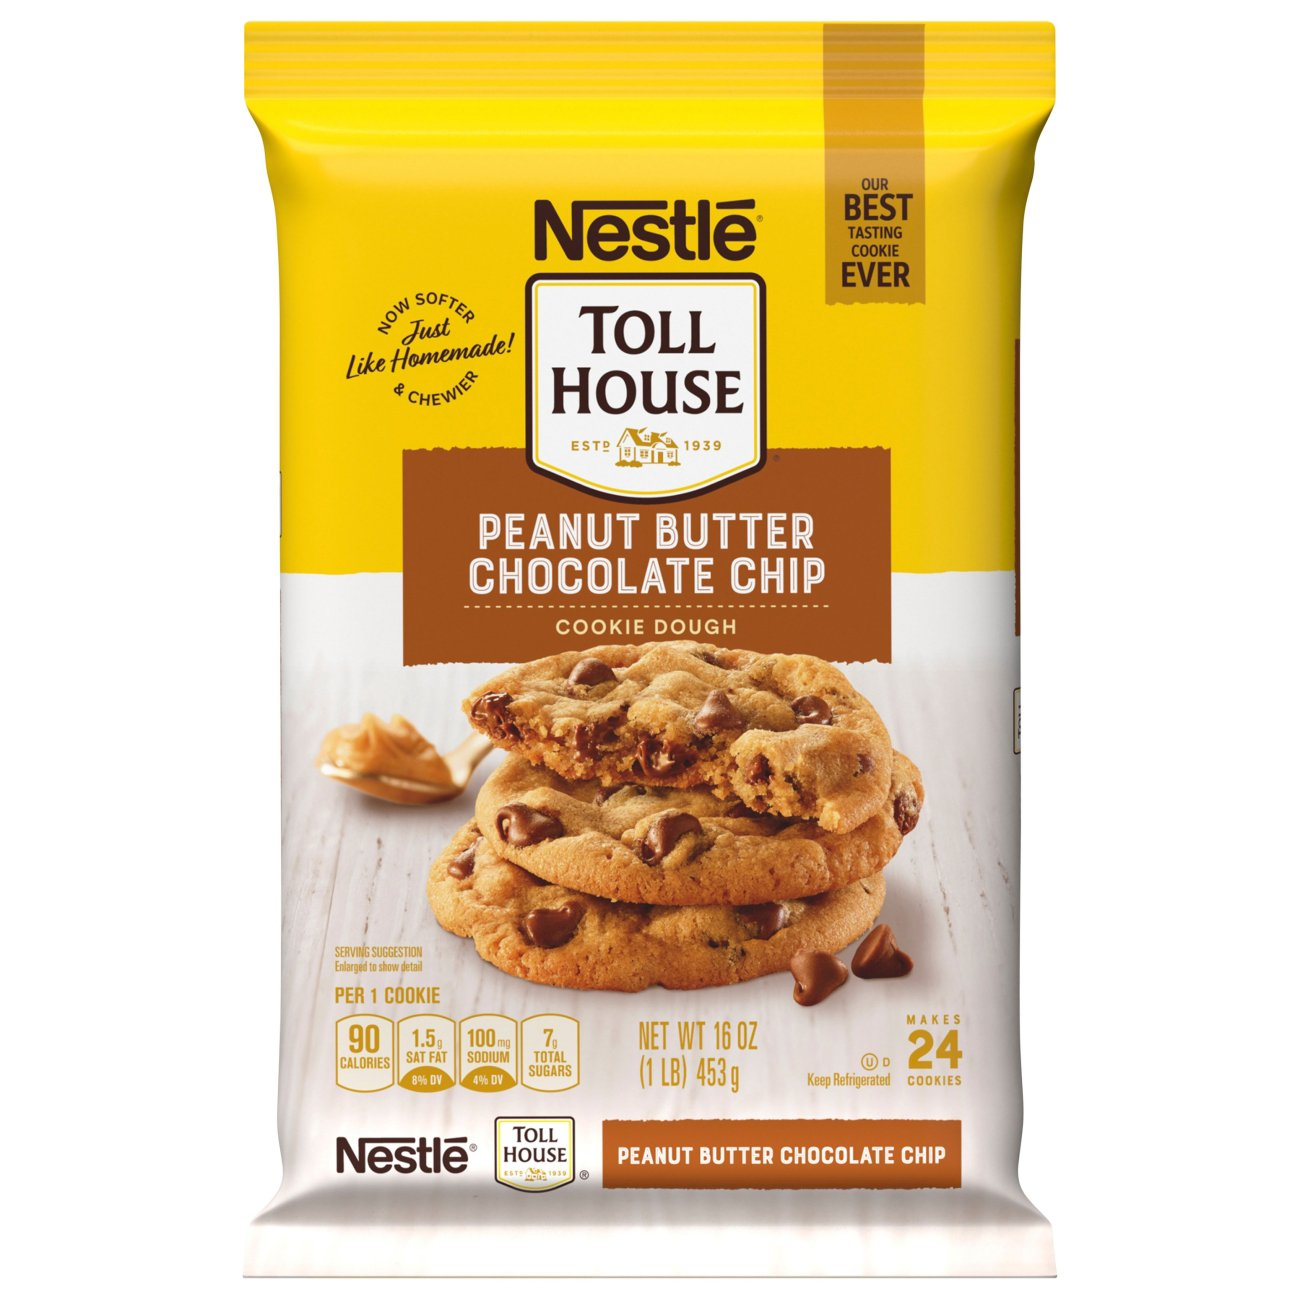 Nestle Toll House Peanut Butter Chocolate Chip Cookie Dough Shop Biscuit Cookie Dough At H E B